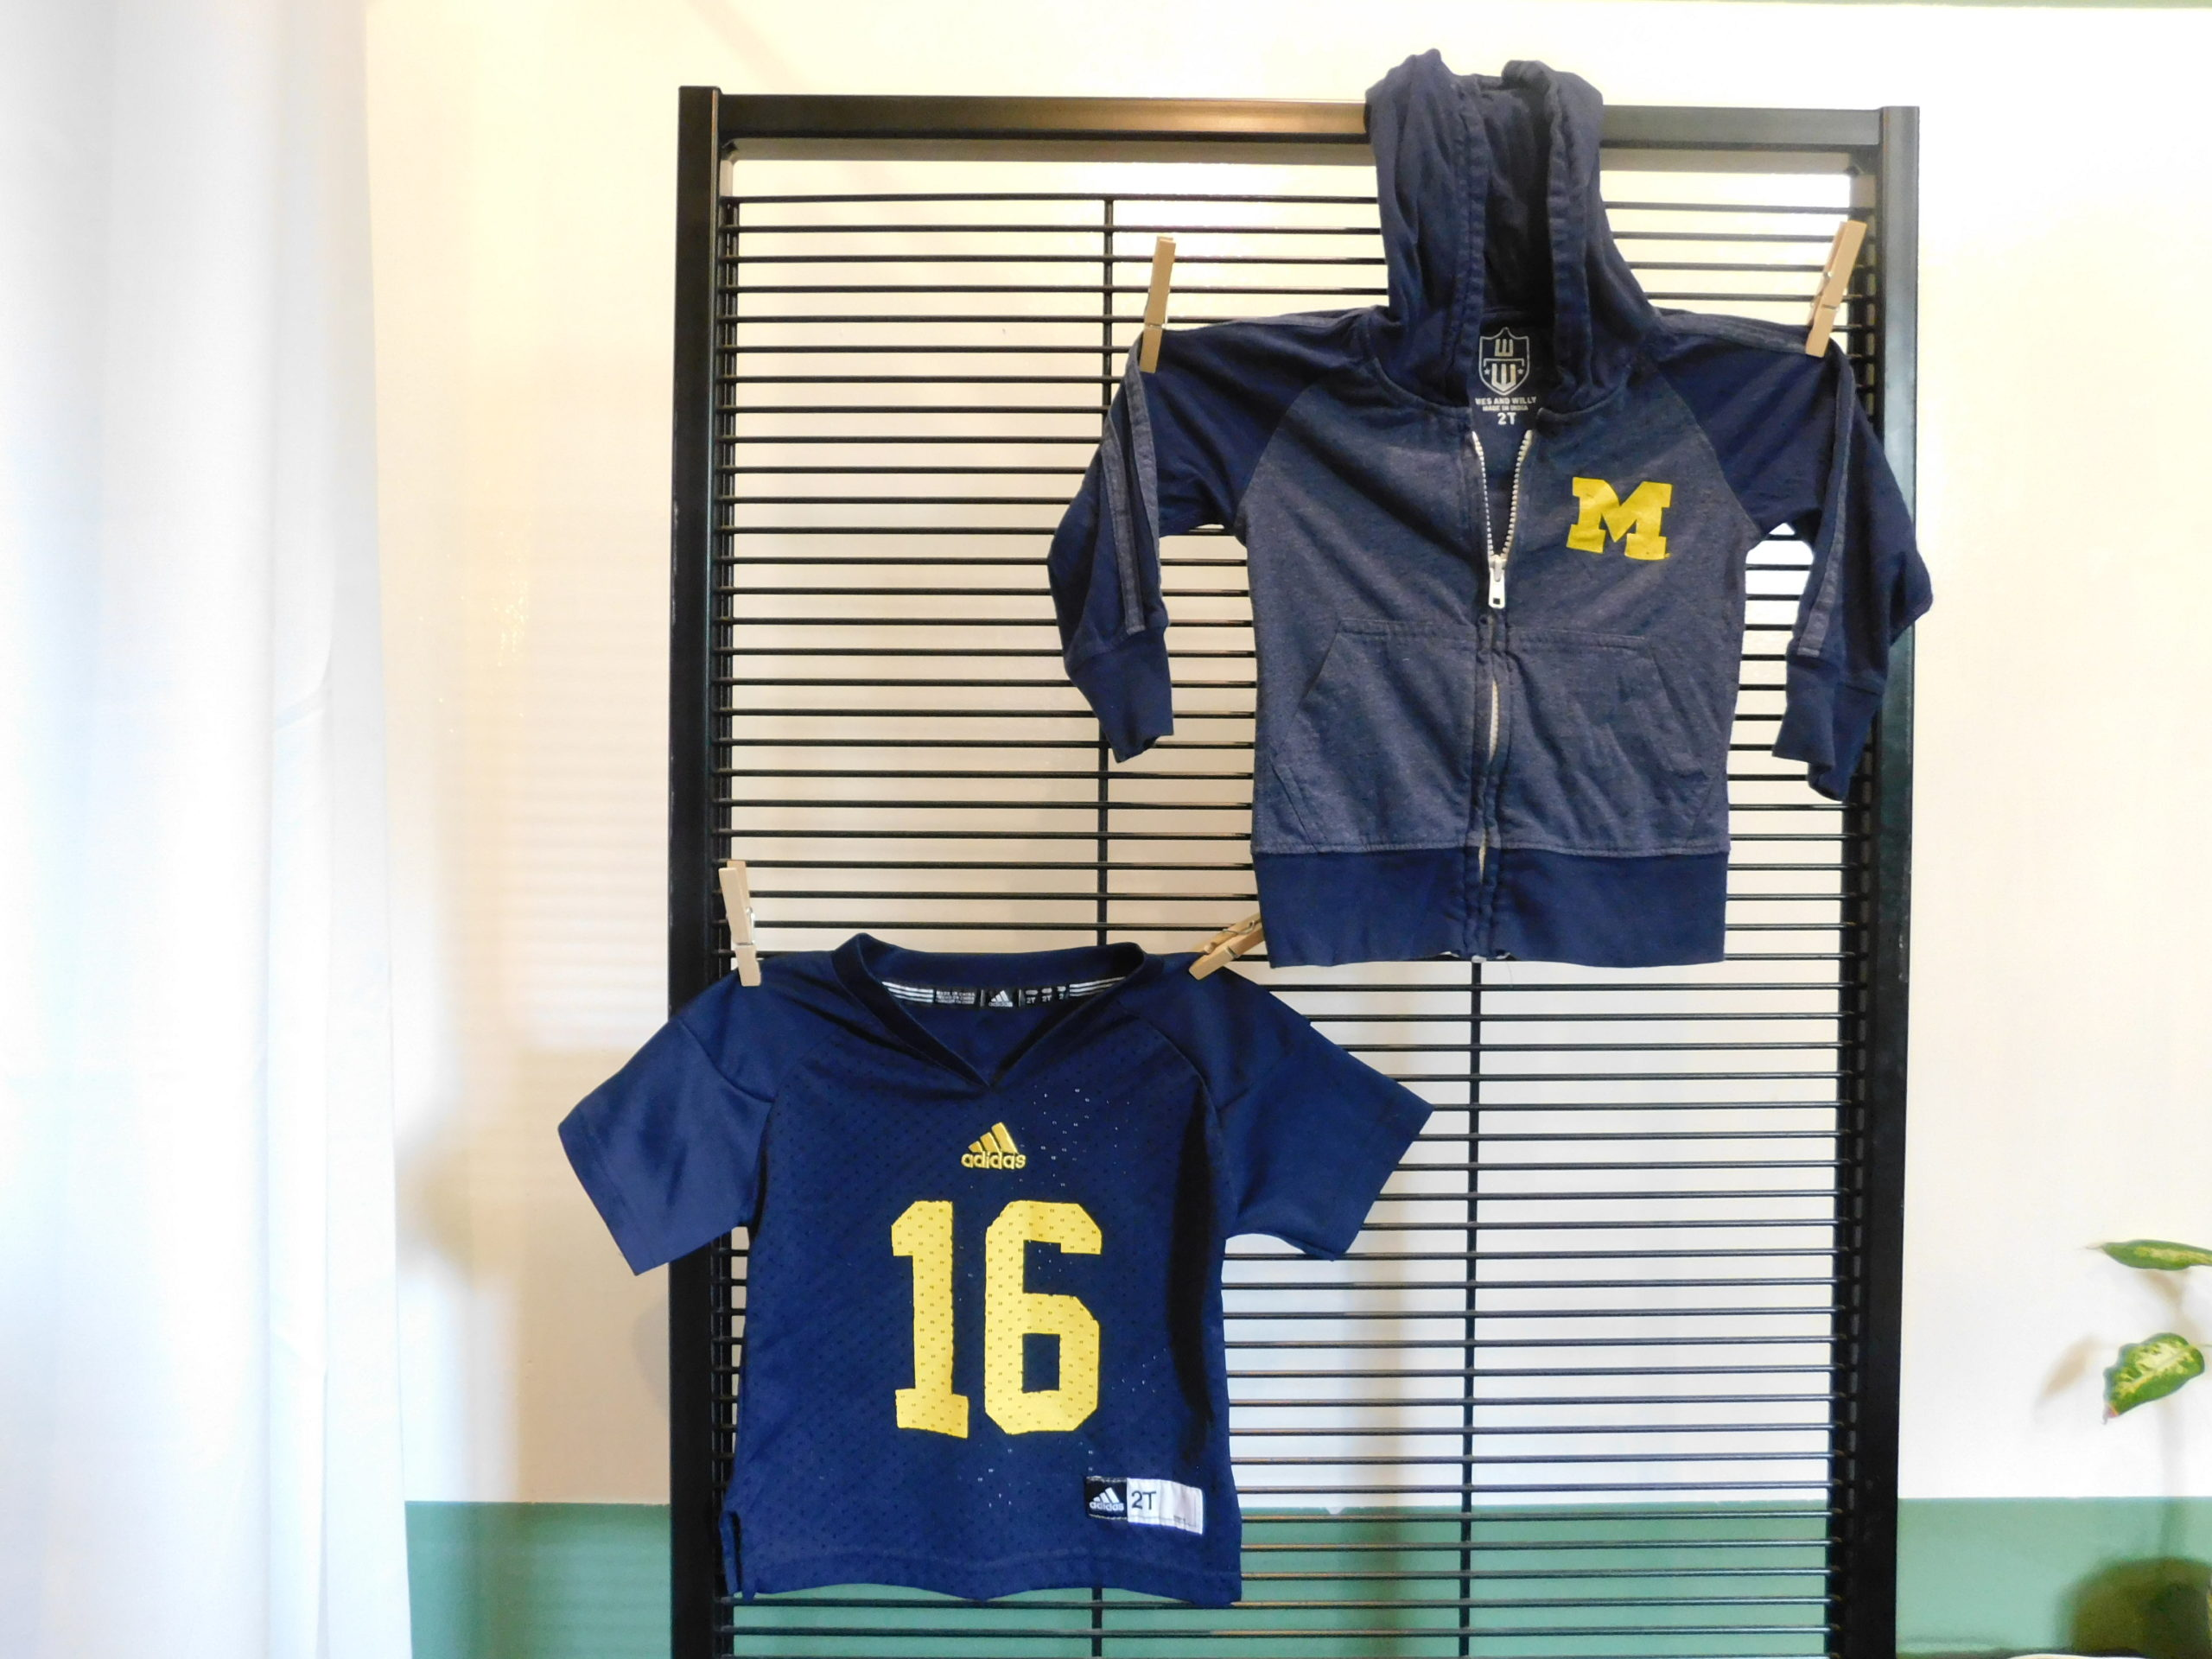 Michigan Wolverines Sz 2T football jersey and hoodie